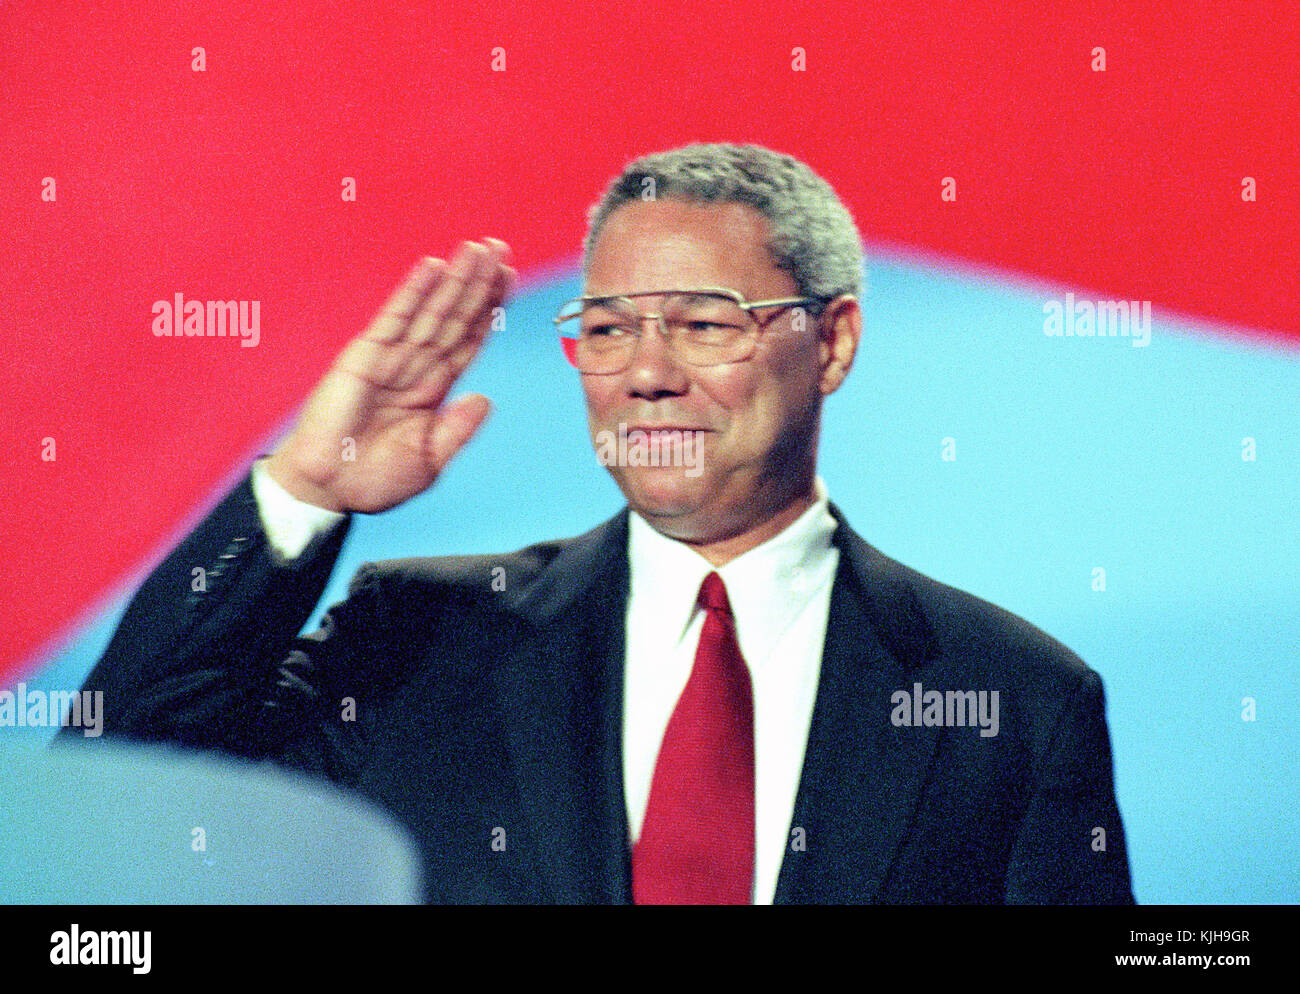 The former Chairman of the Joint Chiefs of Staff Colin L. Powell, United States Army (retired) speaks at the 1996 - Stock Image